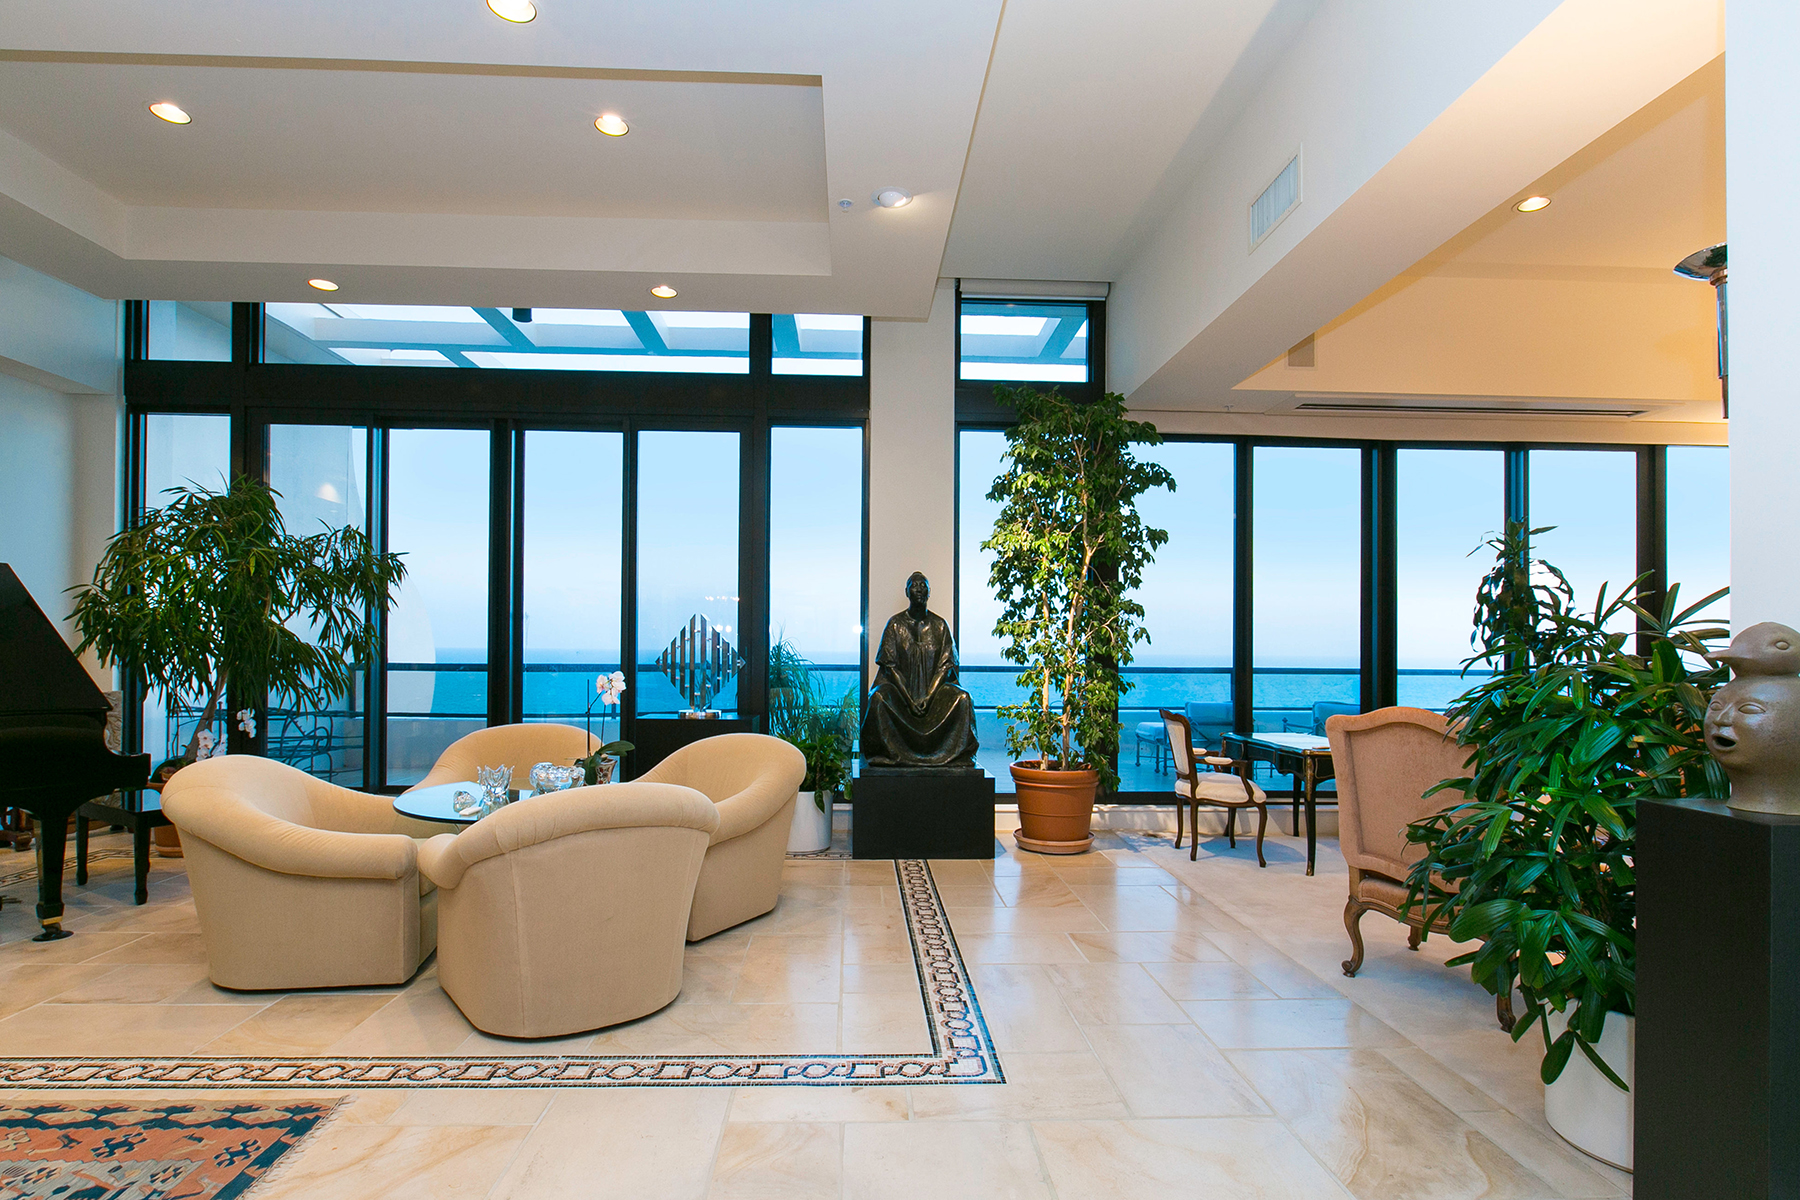 Additional photo for property listing at LONGBOAT KEY 415  L Ambiance Dr PH-C,  Longboat Key, Florida 34228 United States